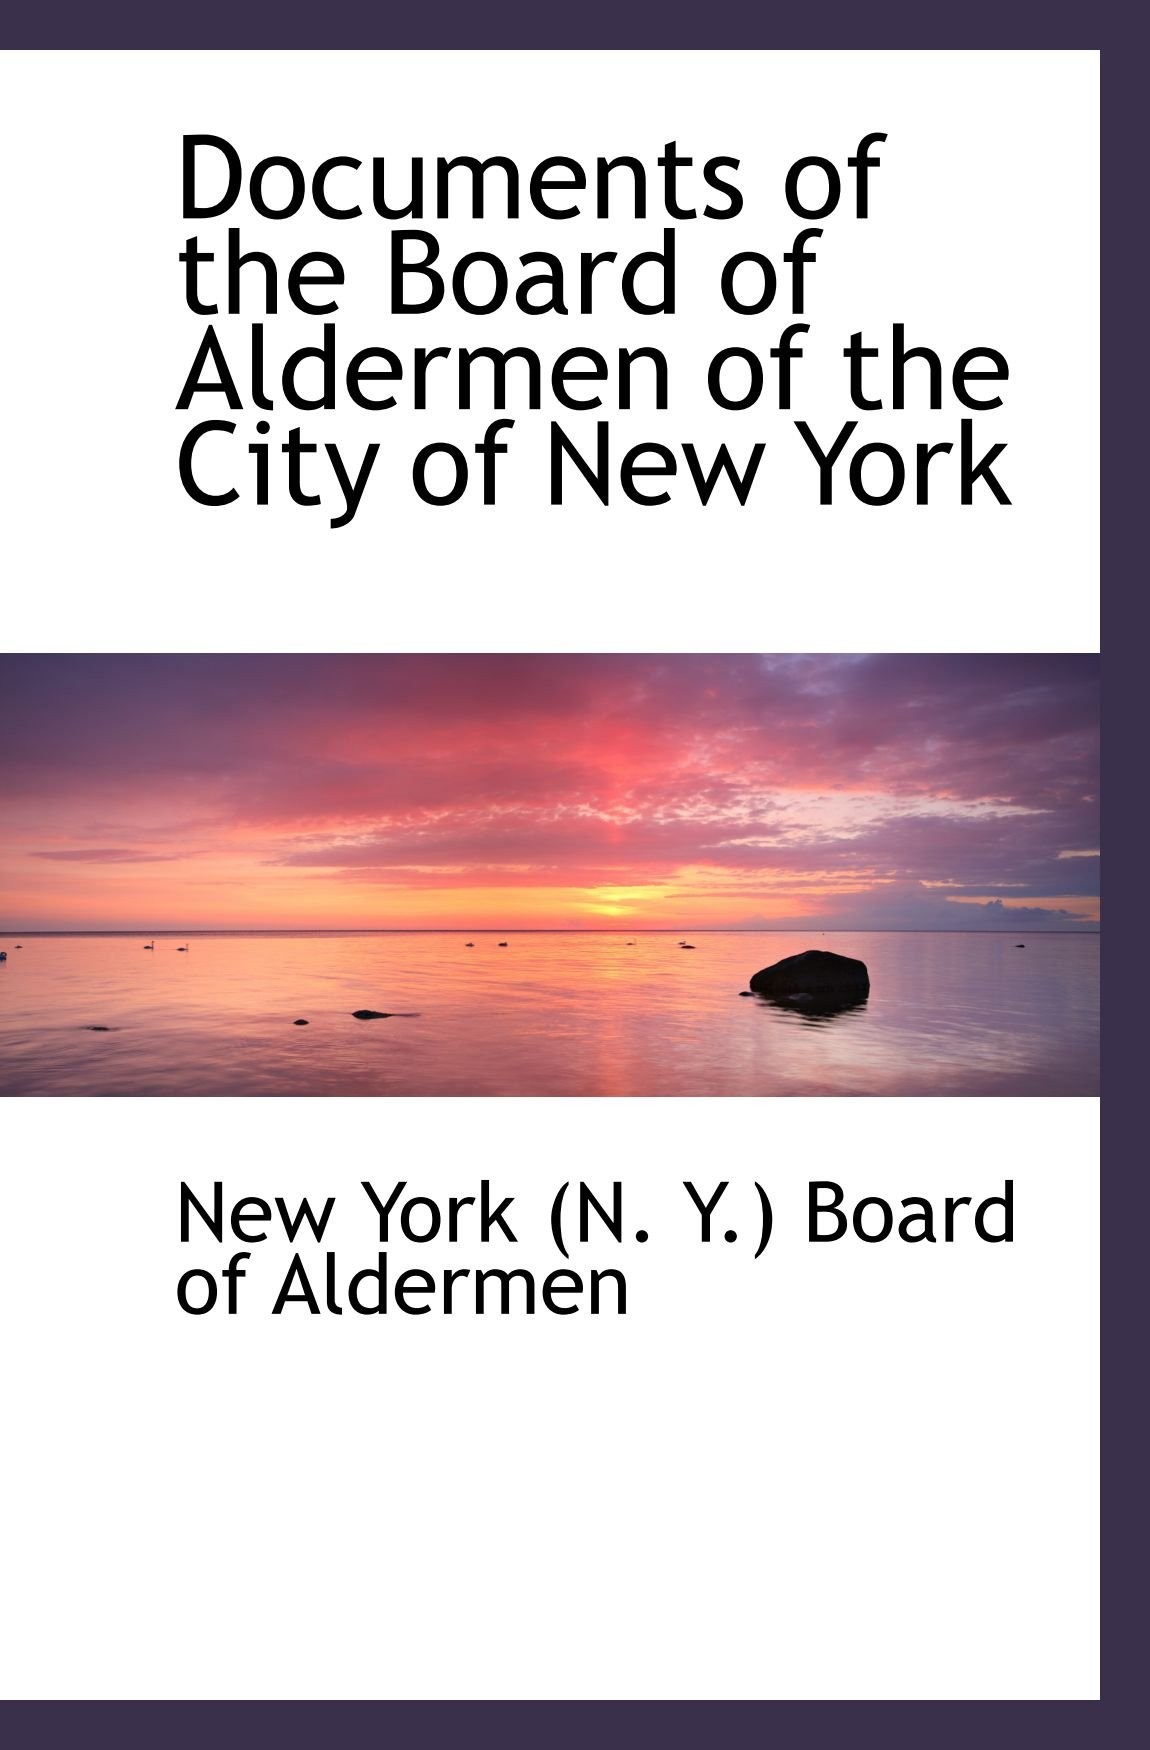 Download Documents of the Board of Aldermen of the City of New York PDF ePub ebook